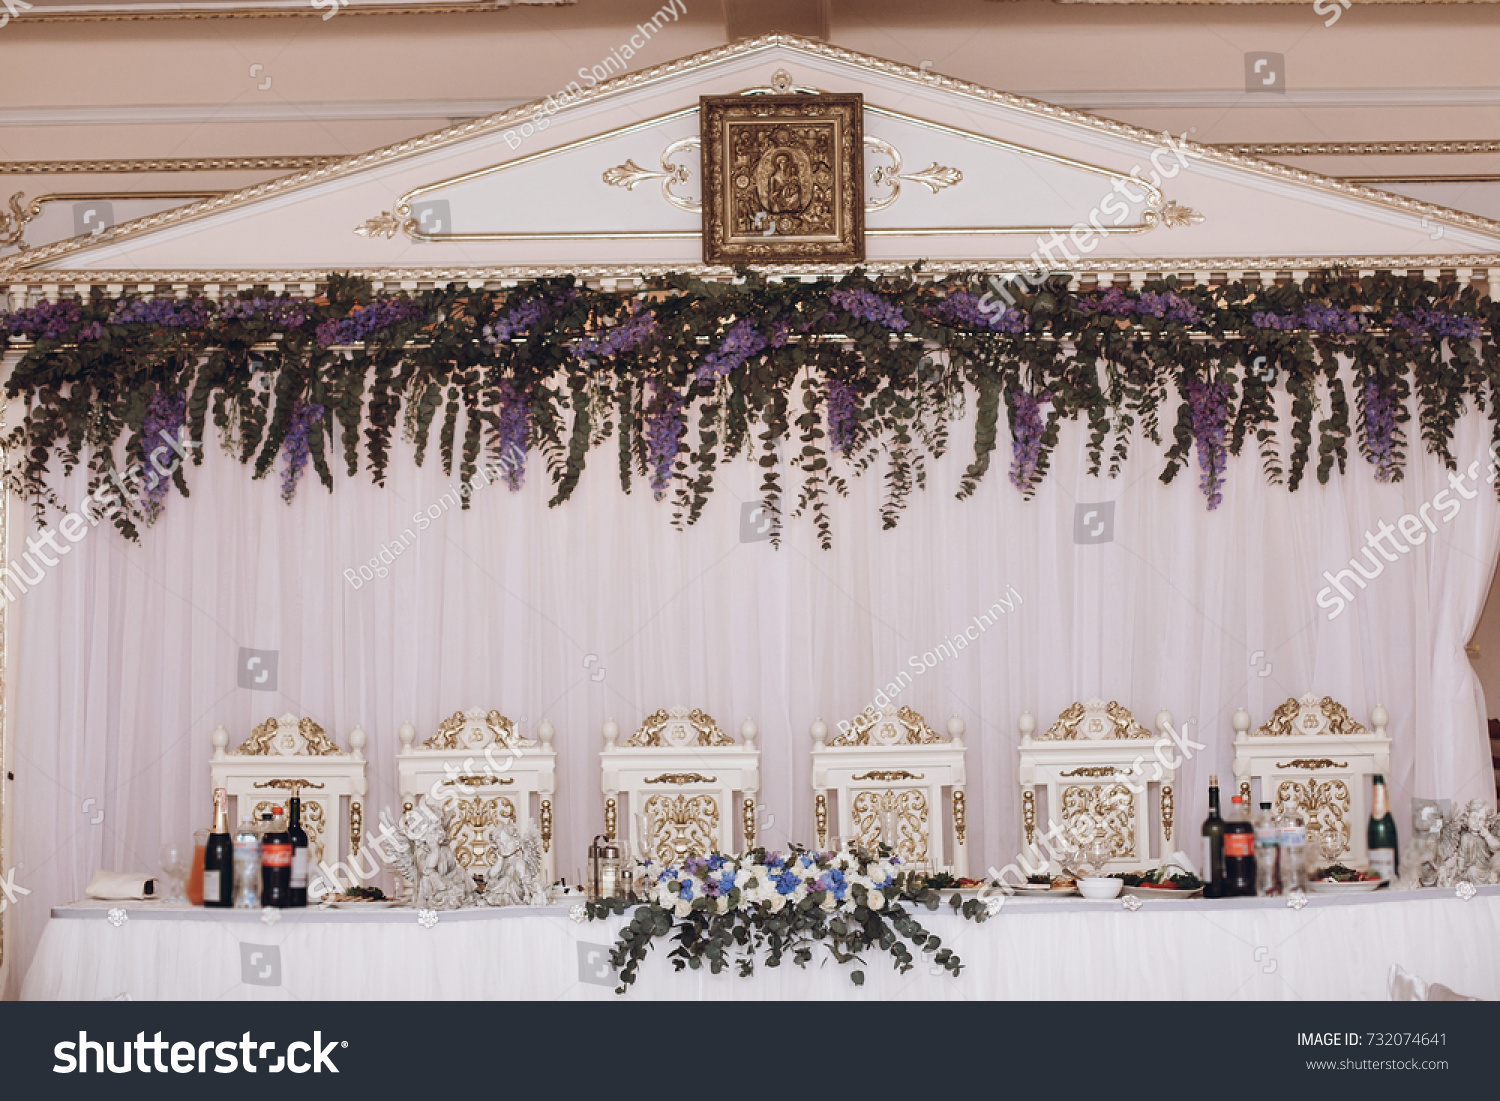 Luxury Decorated Wedding Centerpiece With Purple Flowers. Arrangement For  Bride And Groom, Table With